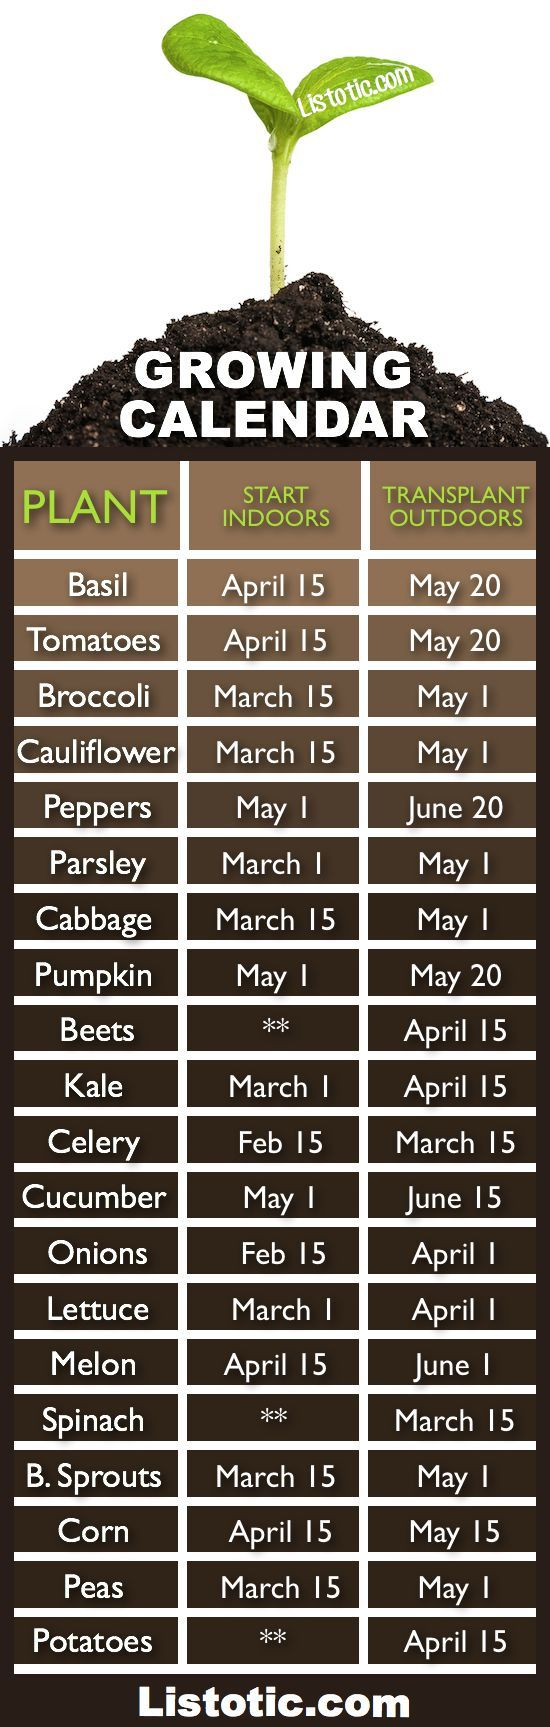 Vegetable garden growing calendar with starting and transplanting dates. If only I had a green thumb, Ill stick to my silk flowers